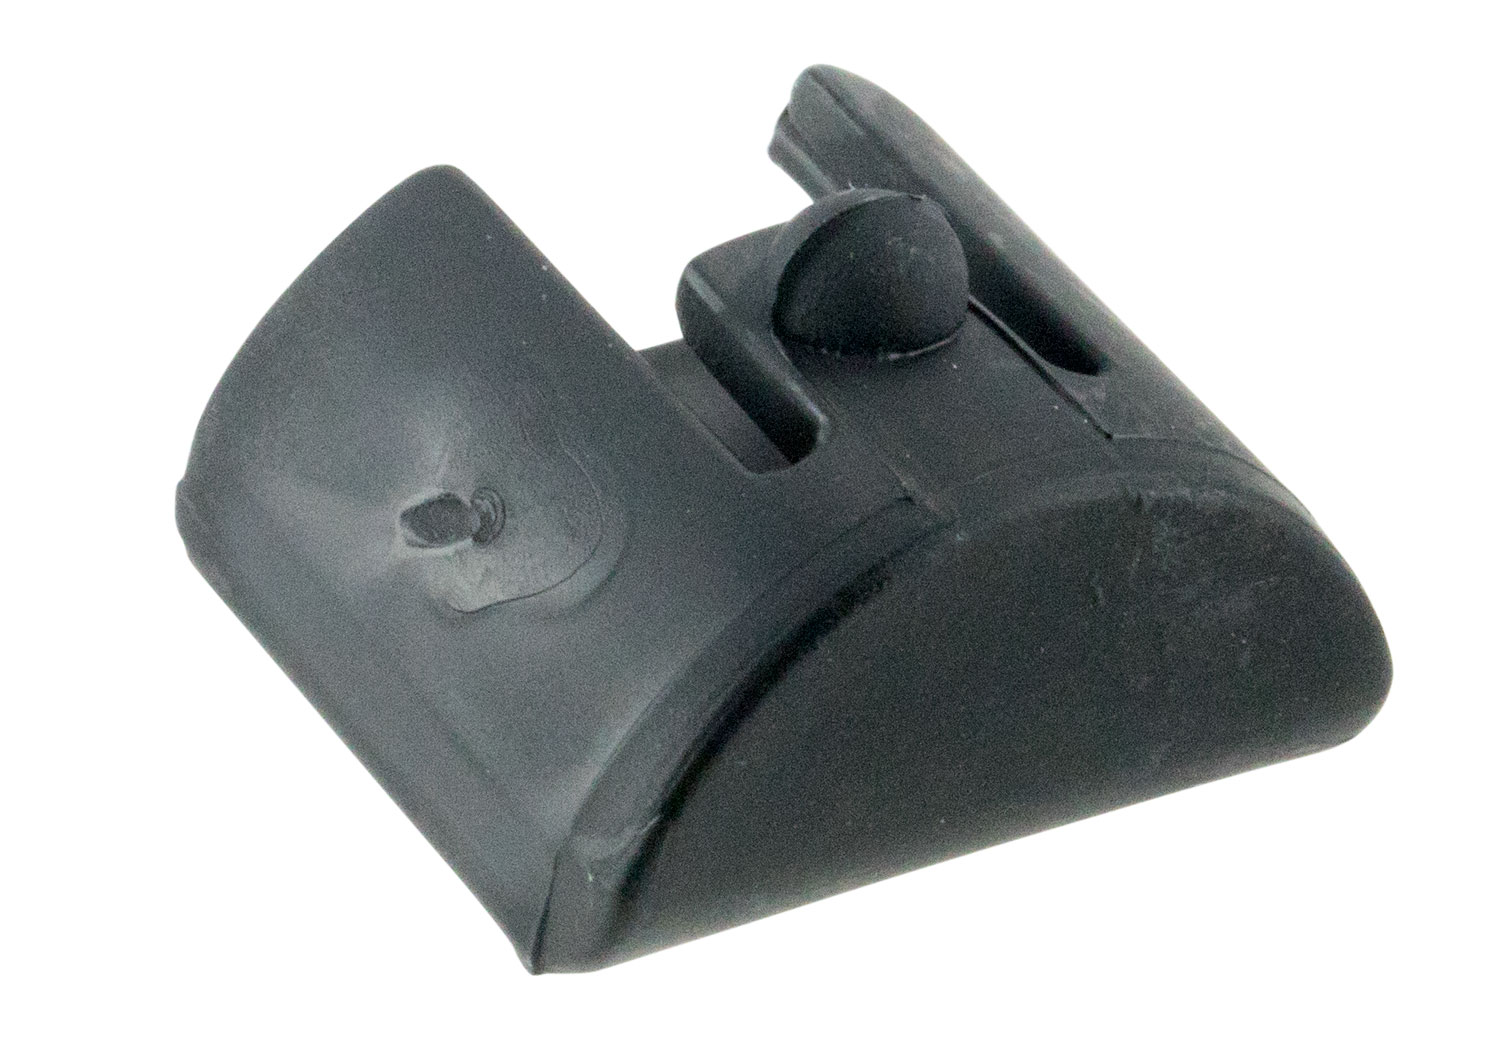 Pearce Grip PGGFI Grip Frame Insert For Glock Mid/Full Size Poly Black